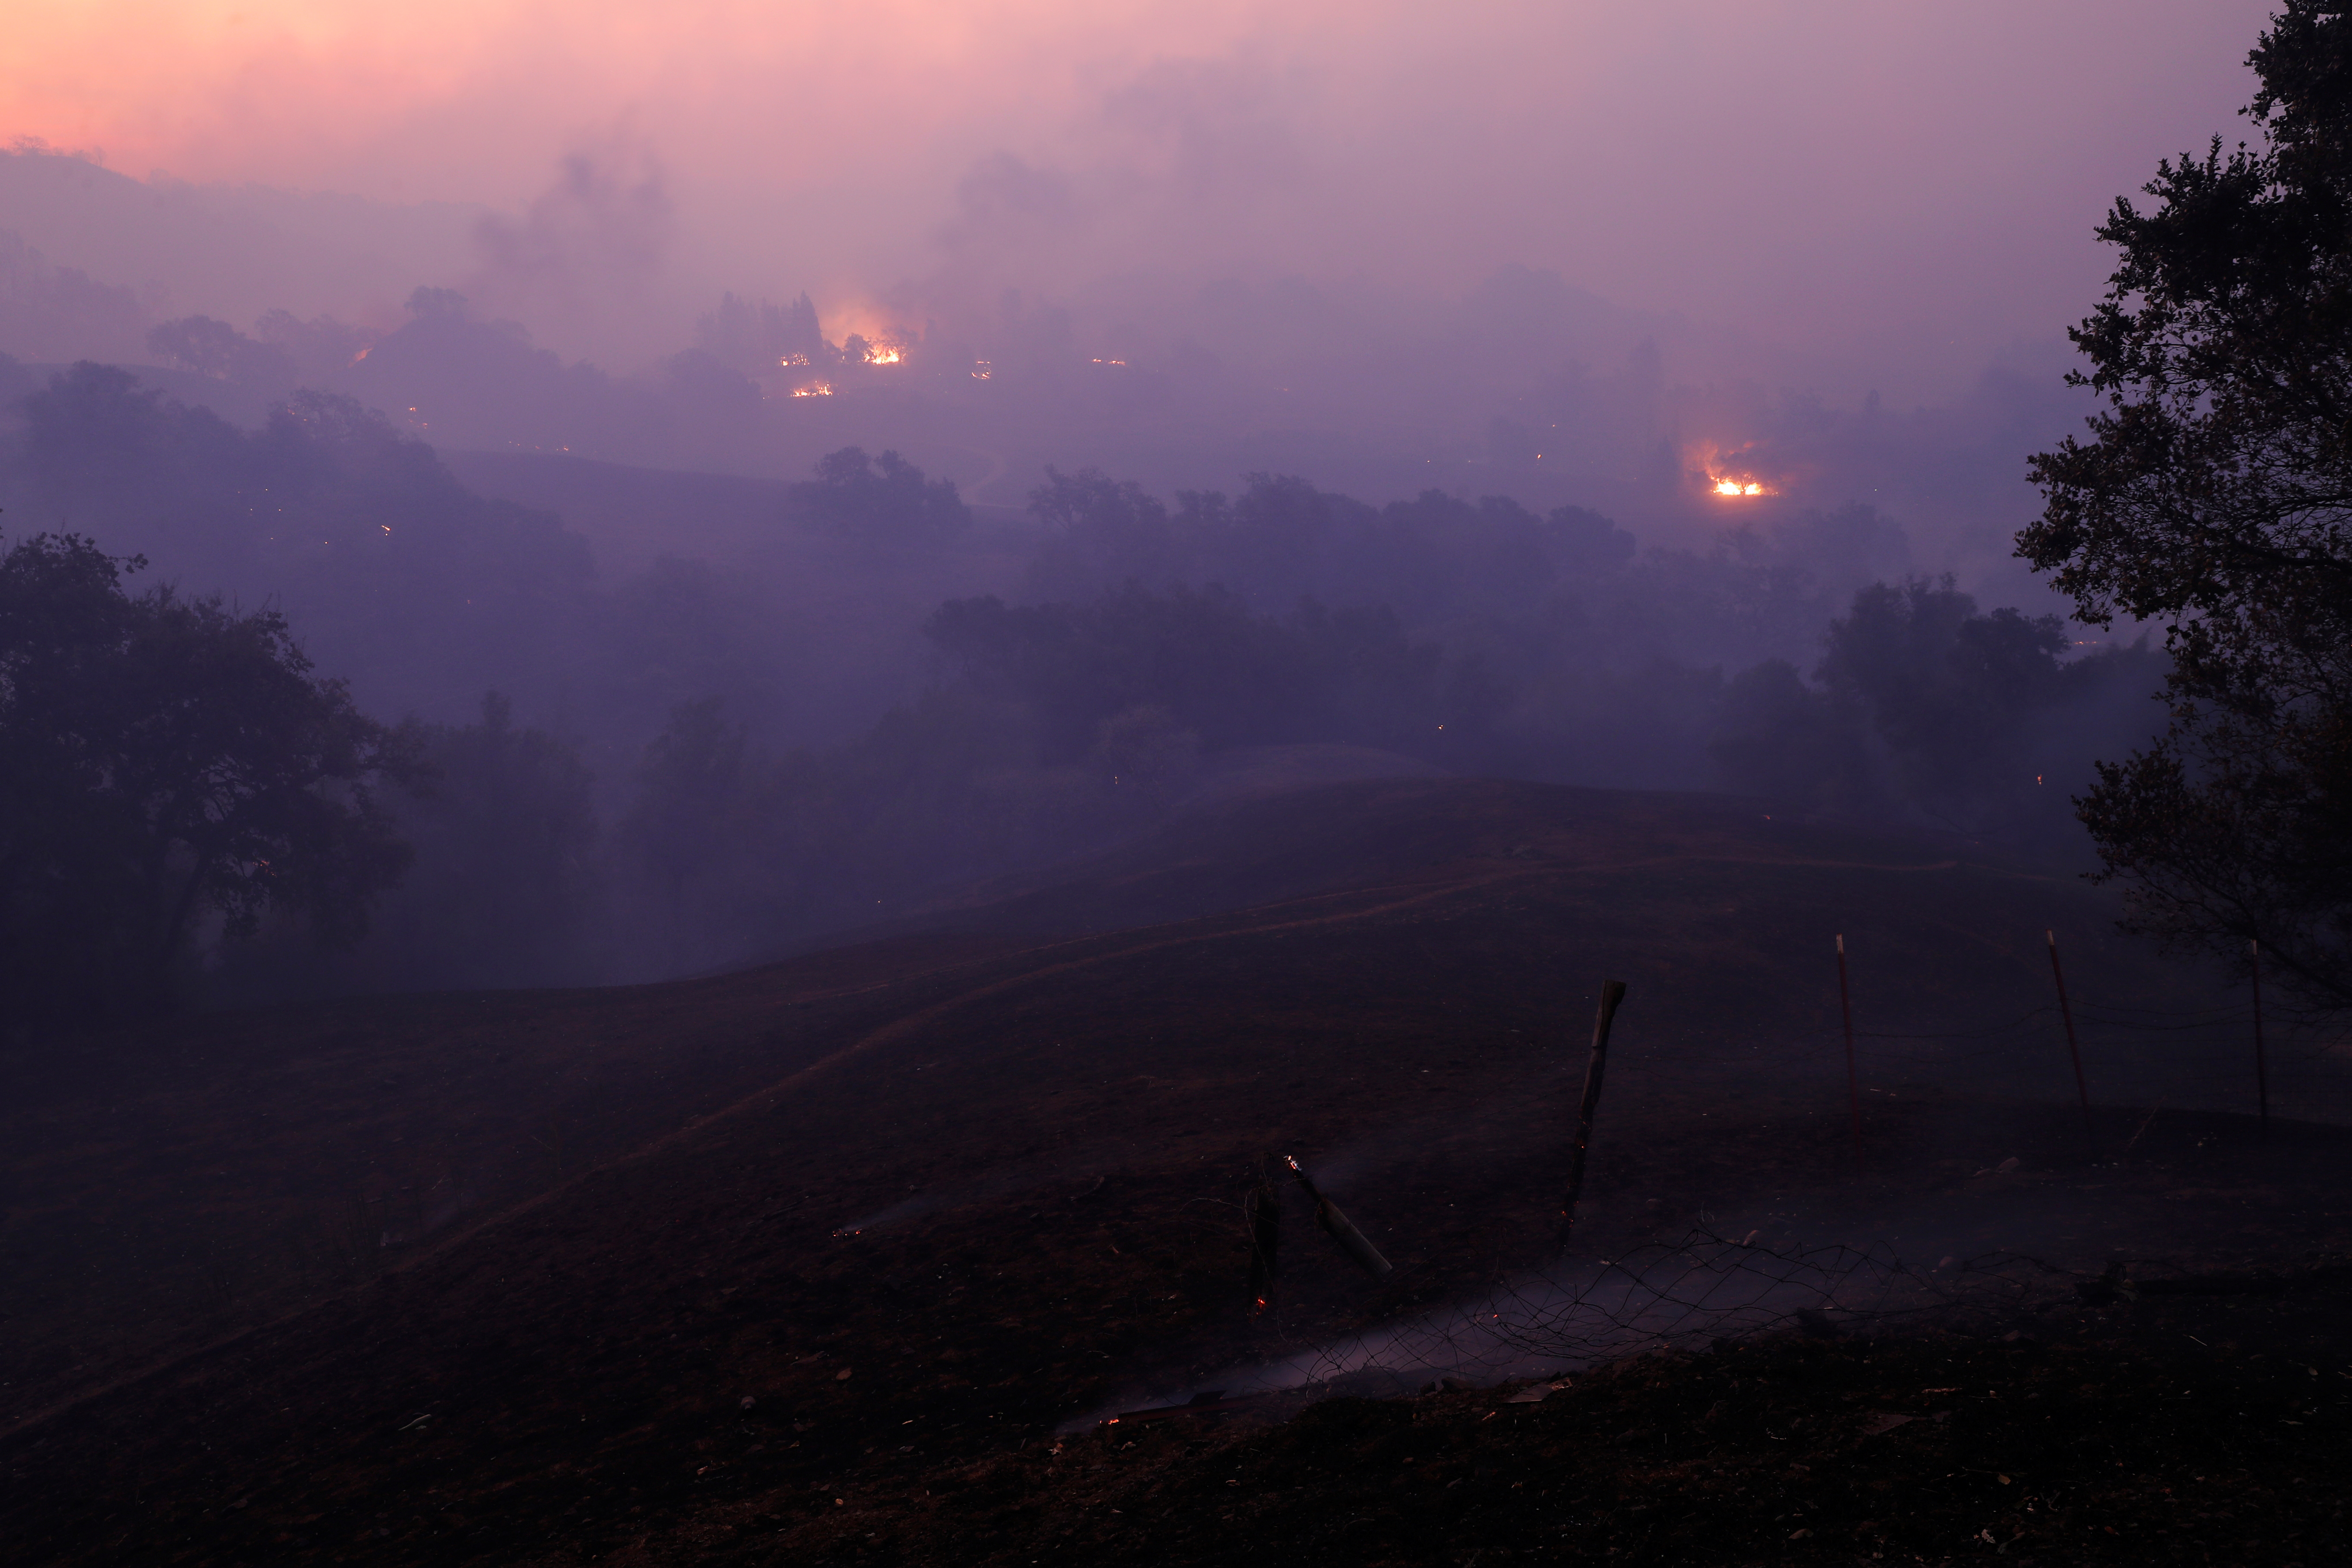 The sun rises above a smoke-filled valley during the Kincade fire in Geyserville.